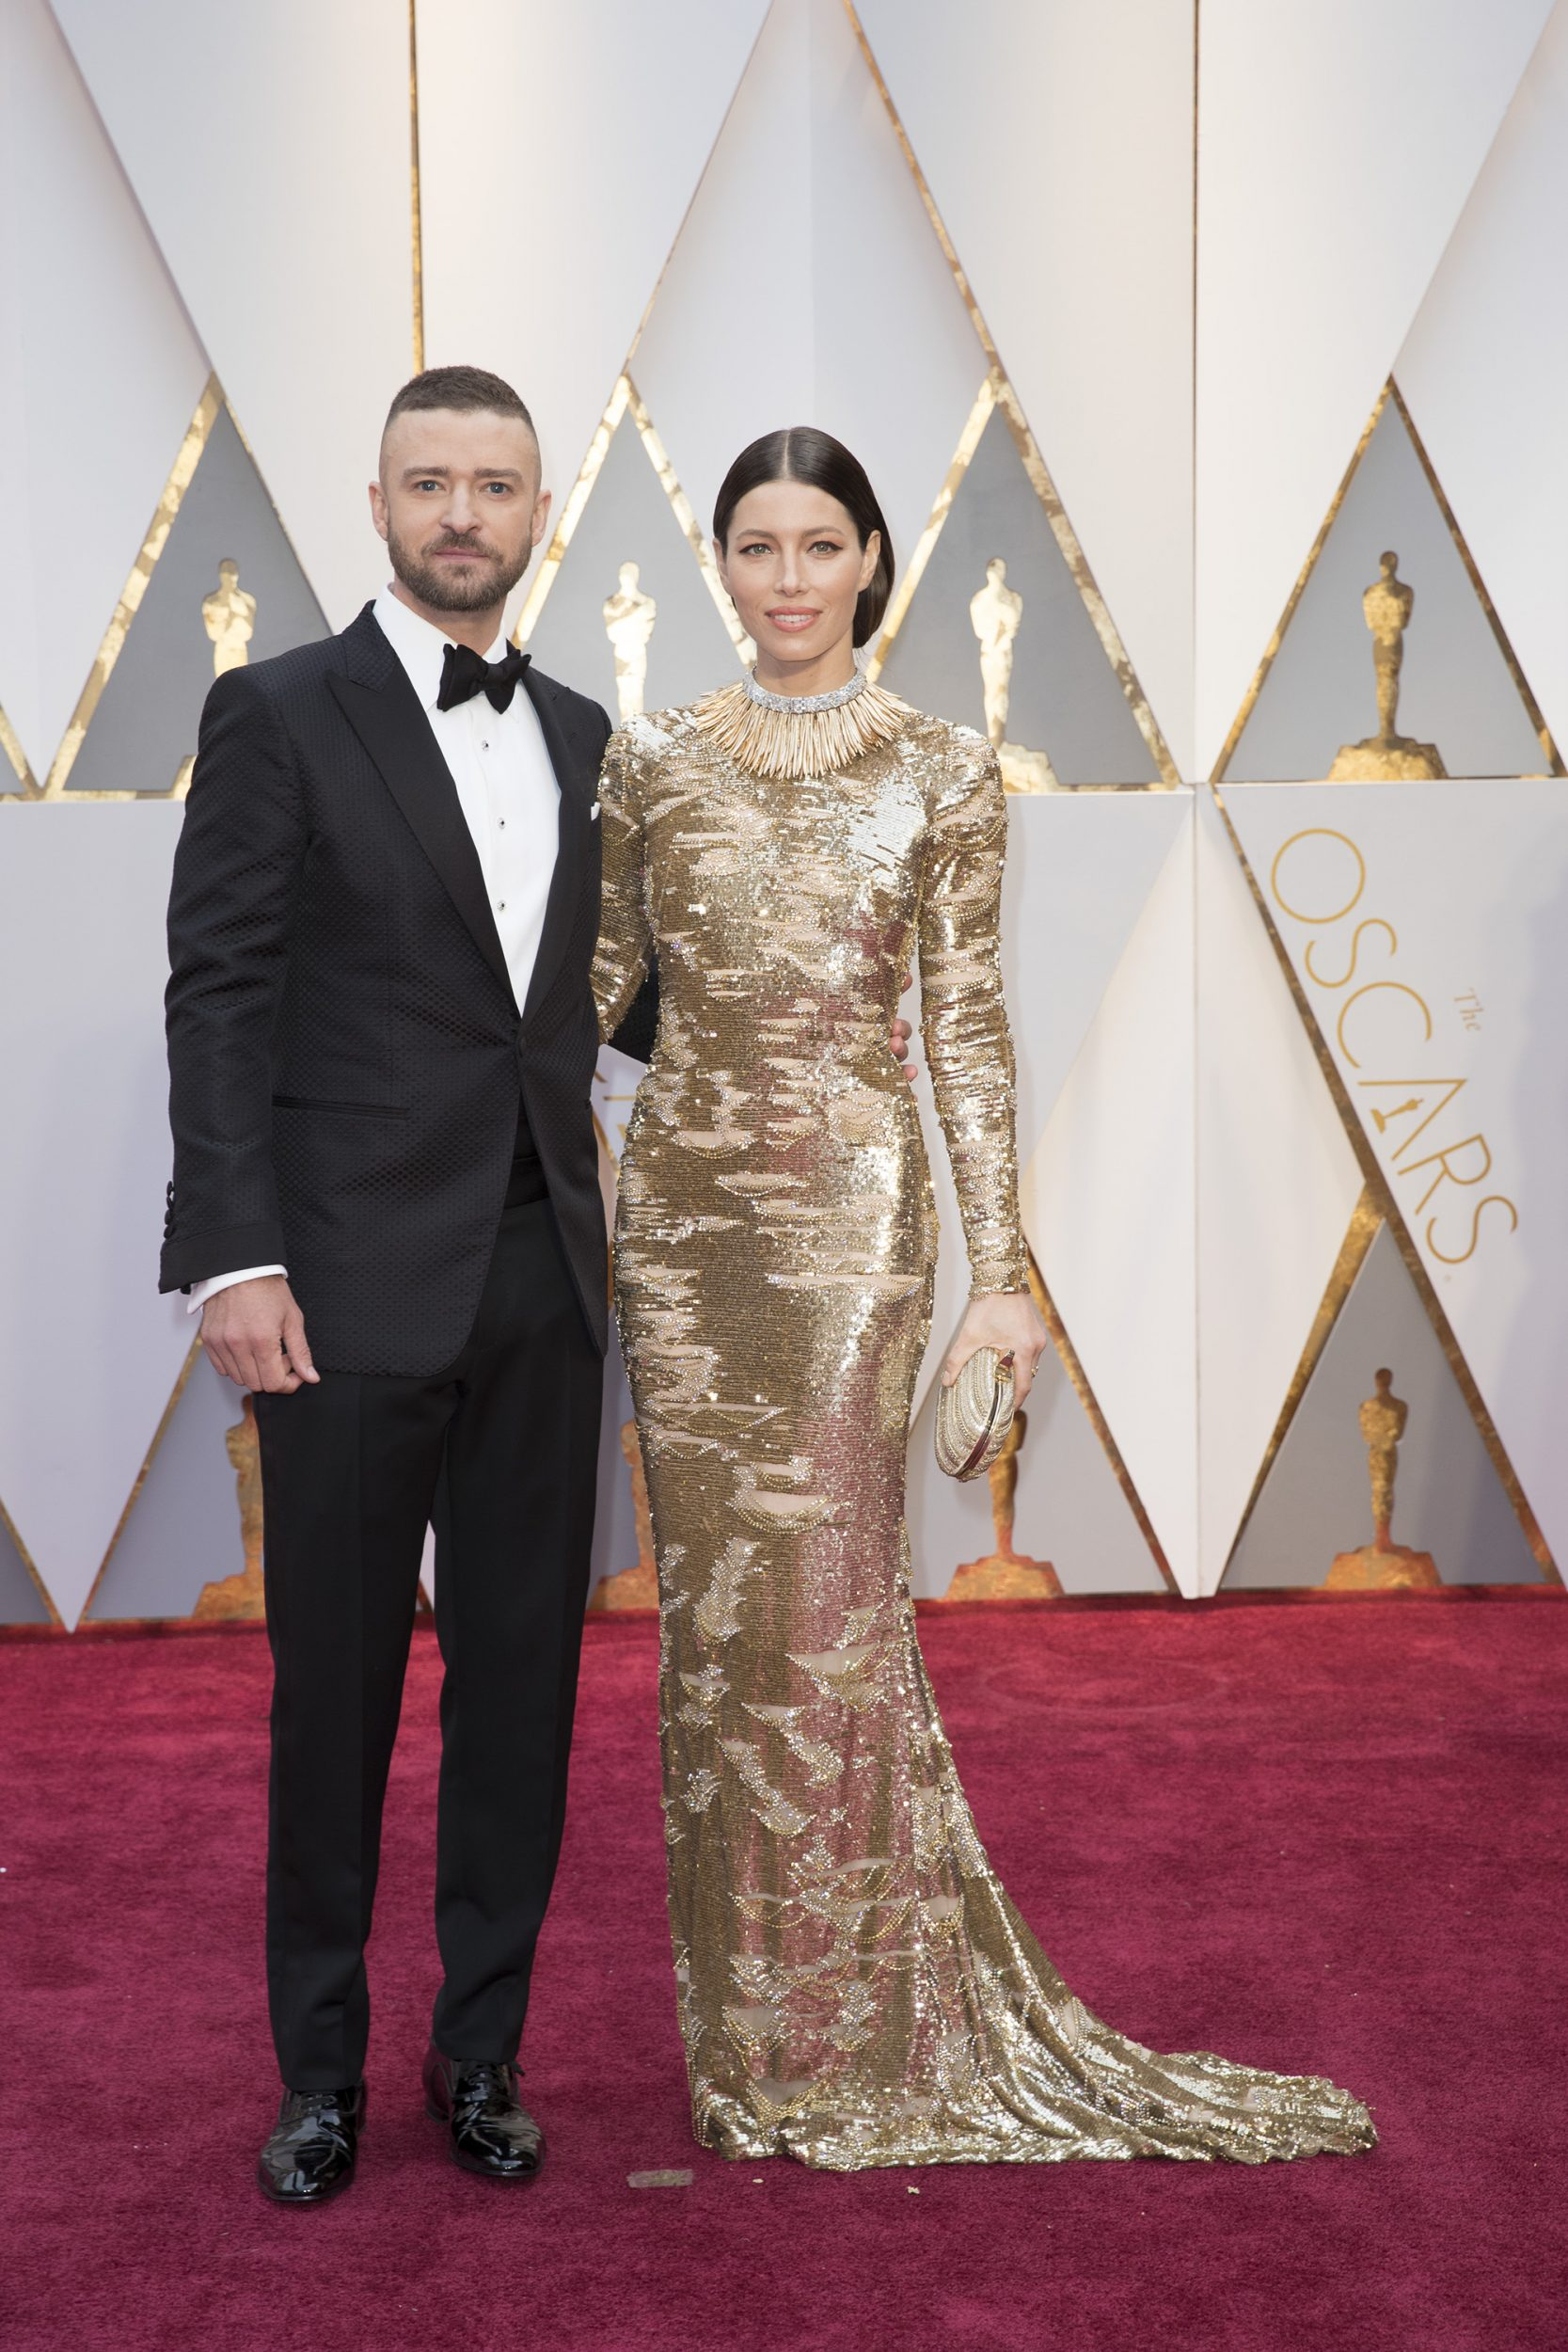 THE OSCARS(r) - The 89th Oscars(r)  broadcasts live on Oscar(r) SUNDAY, FEBRUARY 26, 2017, on the ABC Television Network. (ABC/Tyler Golden) JUSTIN TIMBERLAKE, JESSICA BIEL